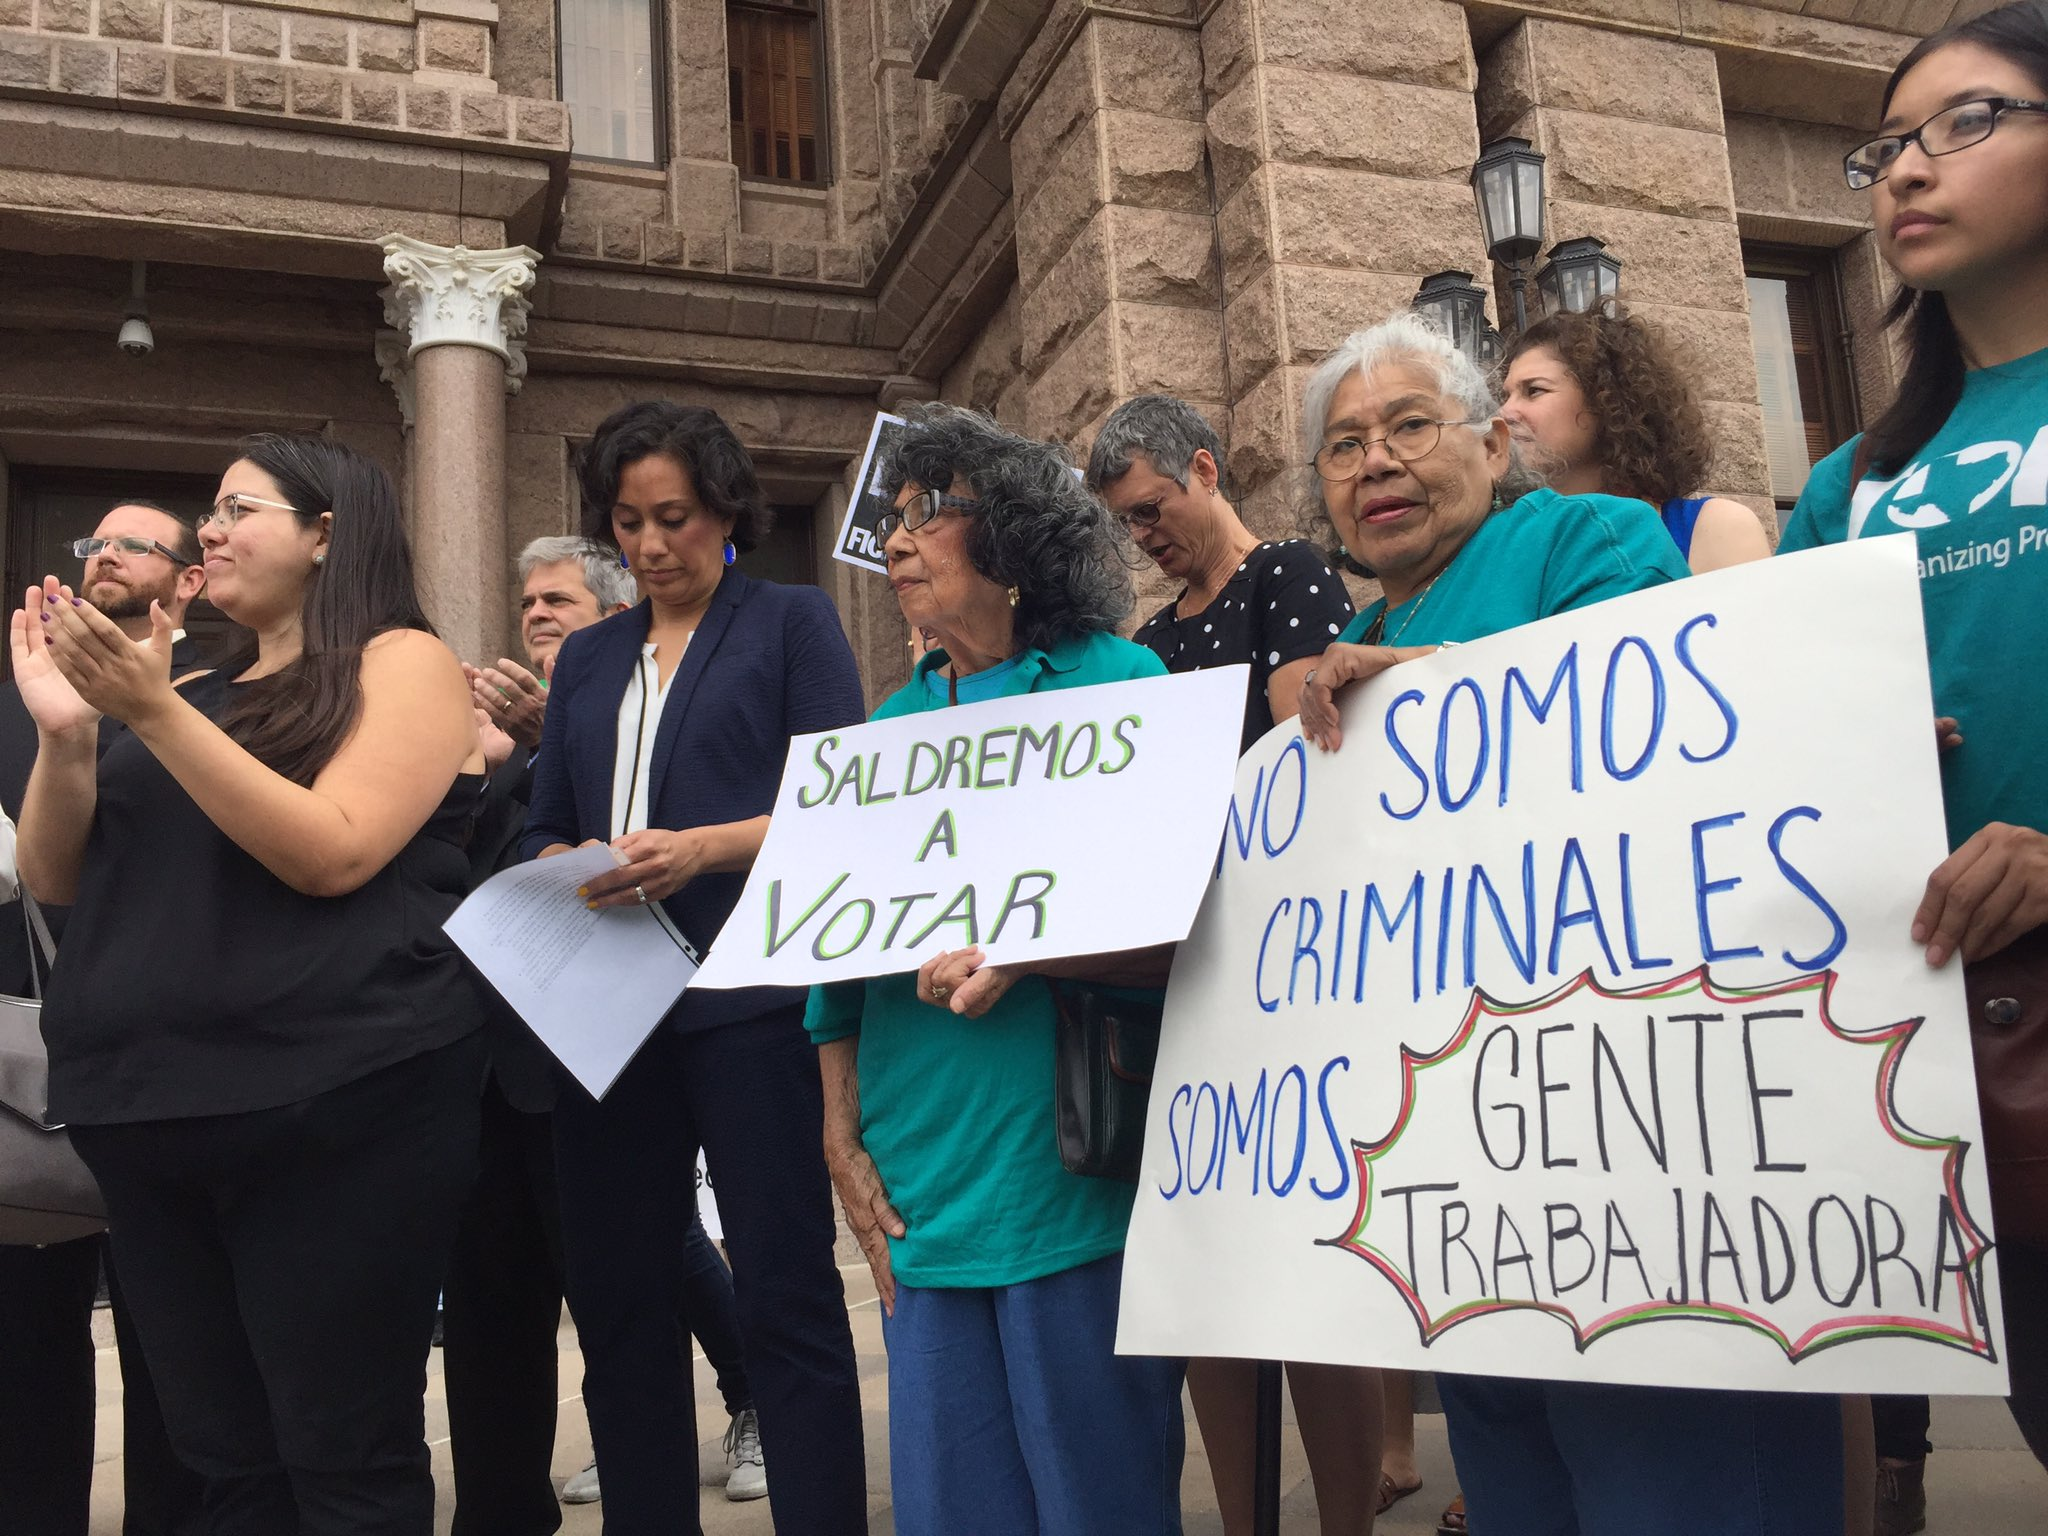 """Protesters at rally w signs that read """"We will vote."""" """"We are not criminals, we are working people."""" #sb4 #txlege https://t.co/Vab2qXiz4Y"""